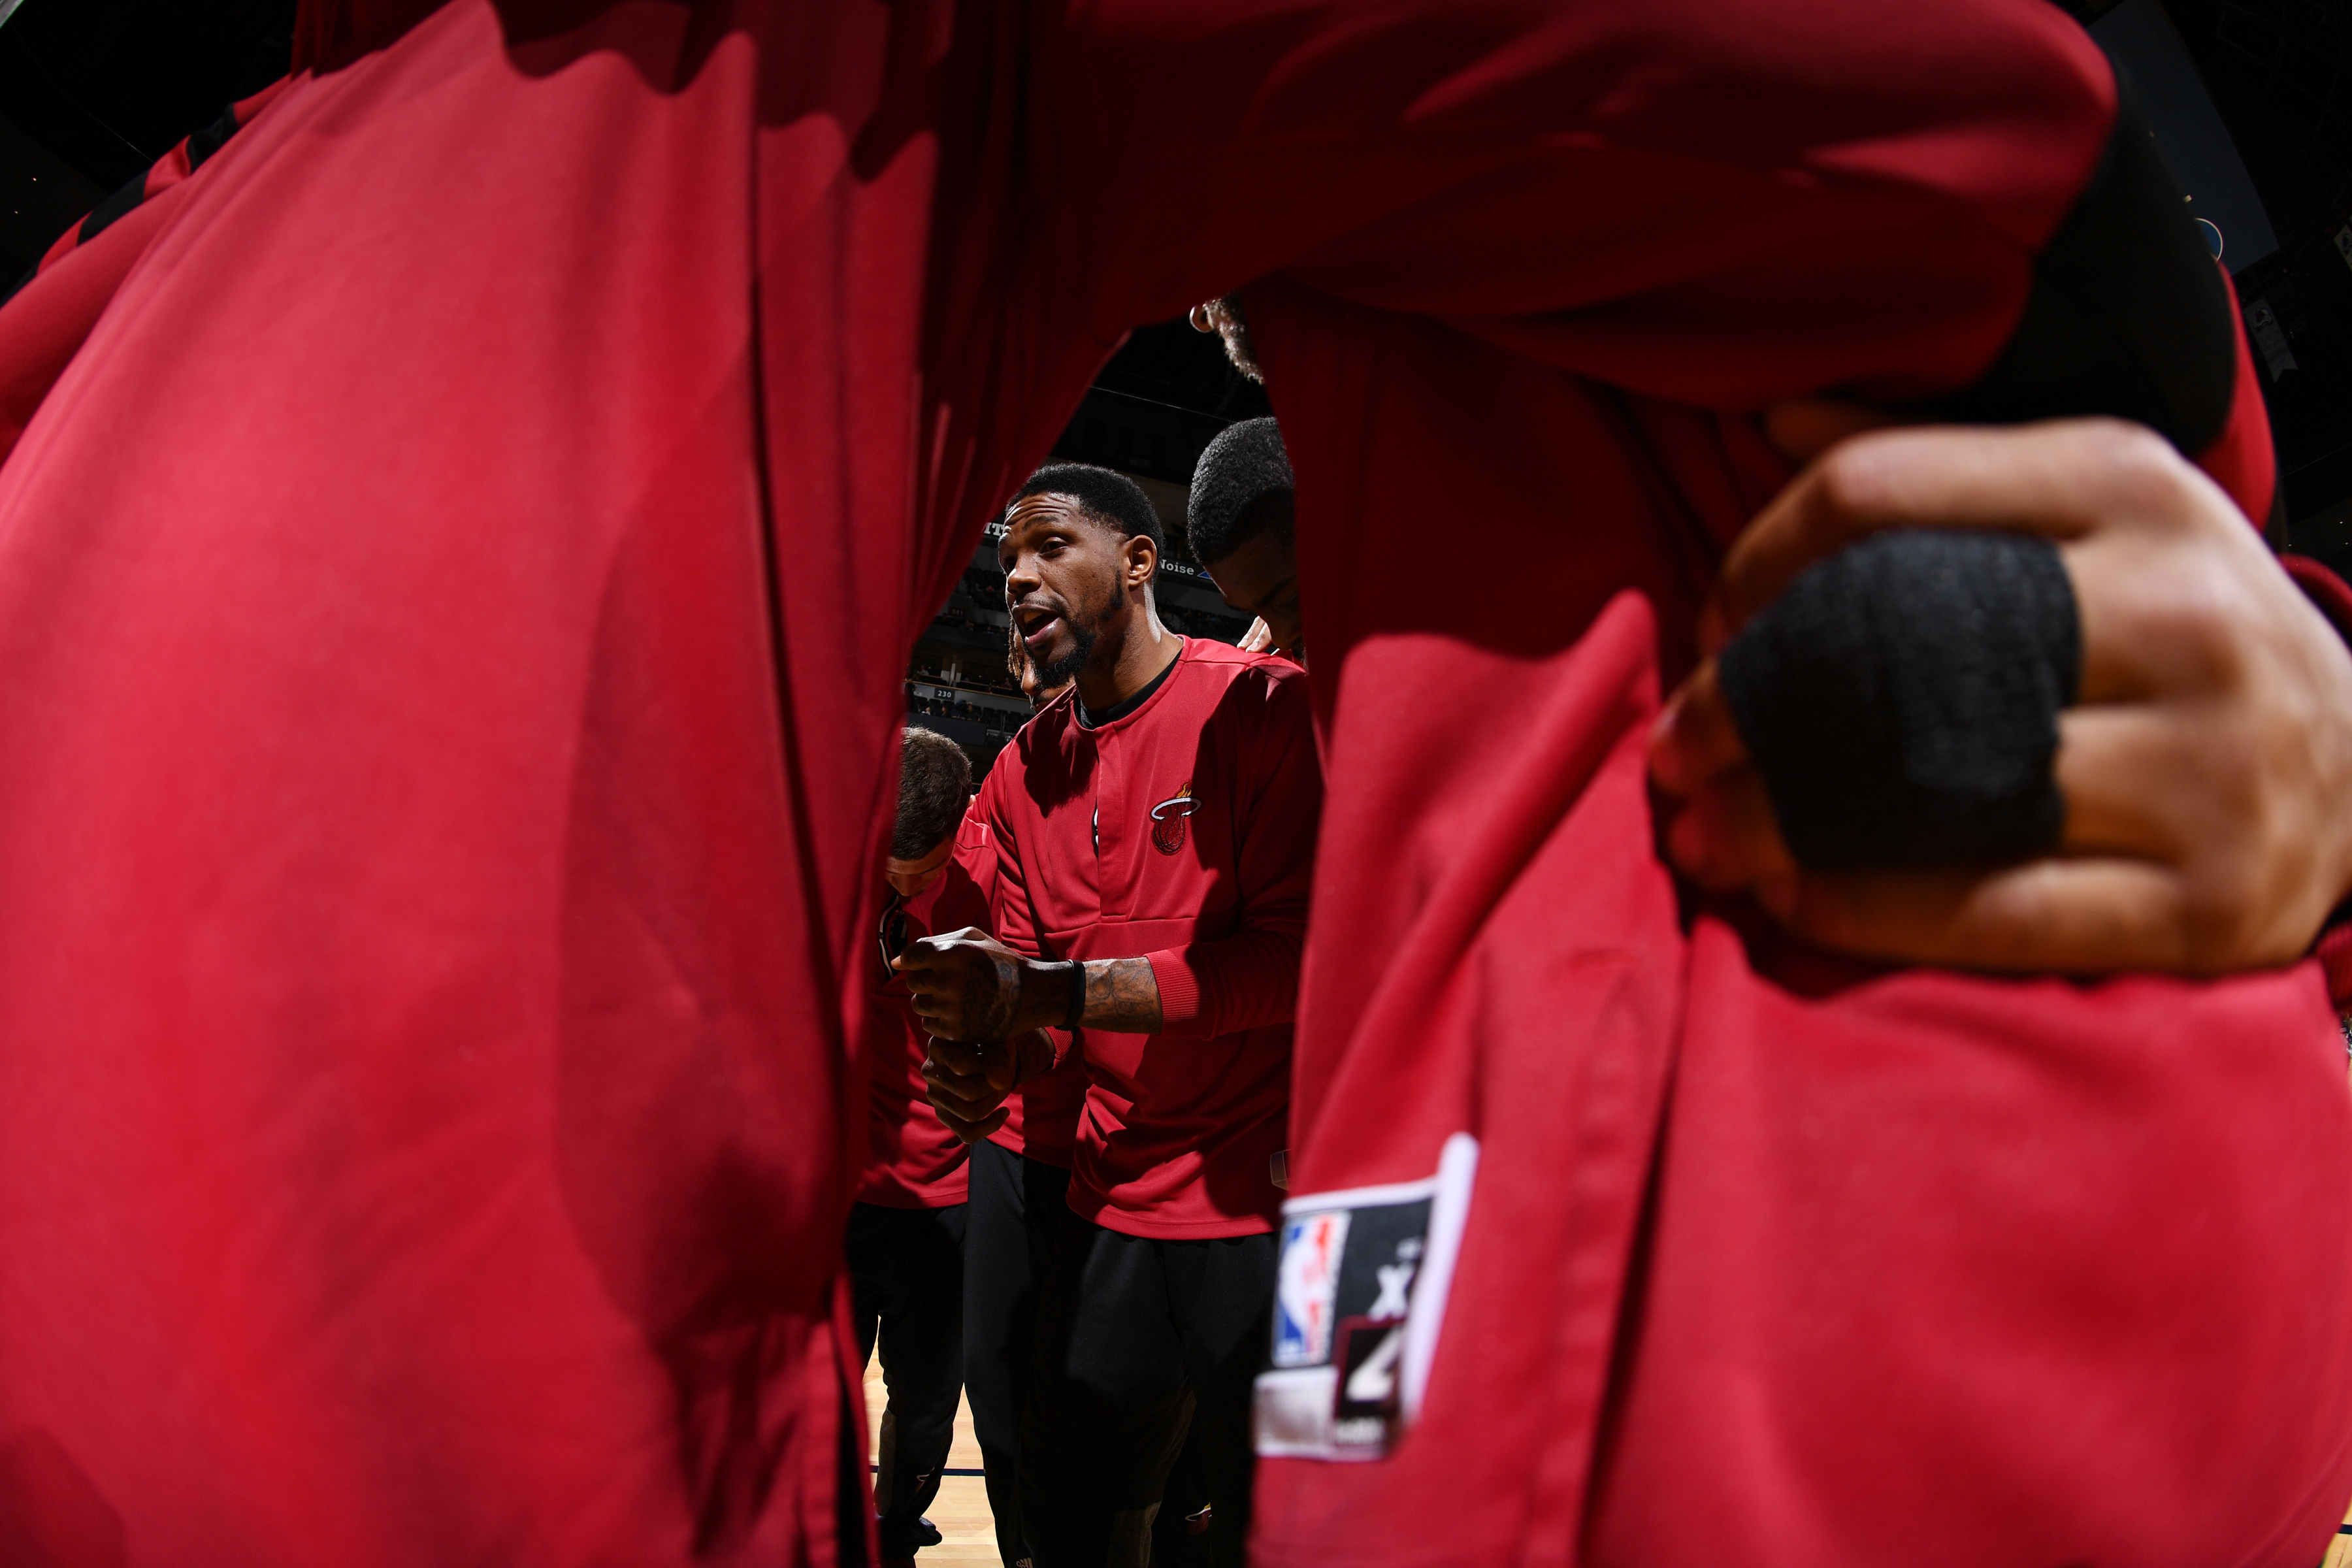 Udonis Haslem #40 of the Miami Heat huddles with the Miami Heat before the game against the Denver Nuggets on November 30, 2016 at the Pepsi Center in Denver, Colorado.